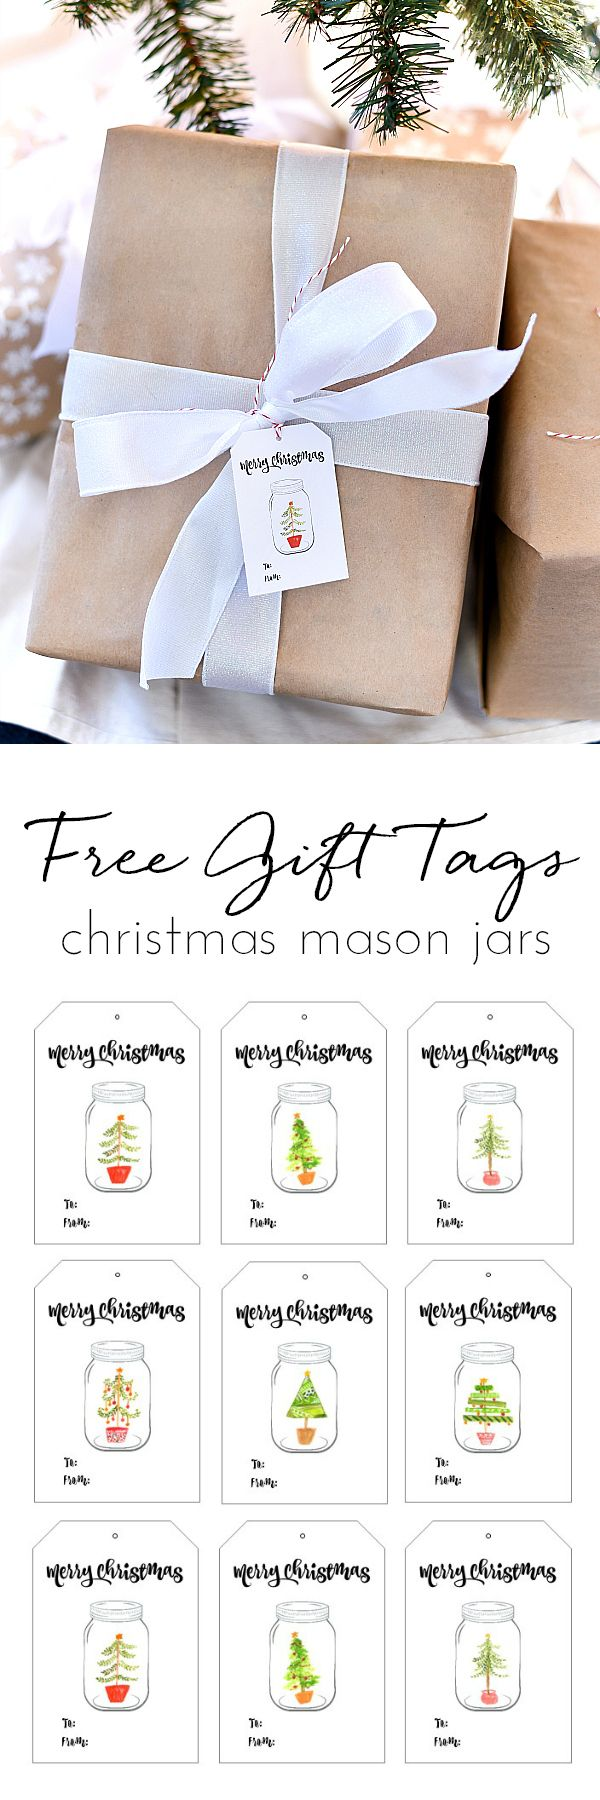 Free Printable Christmas Gift Tags - Mason Jar Christmas Gift Tags